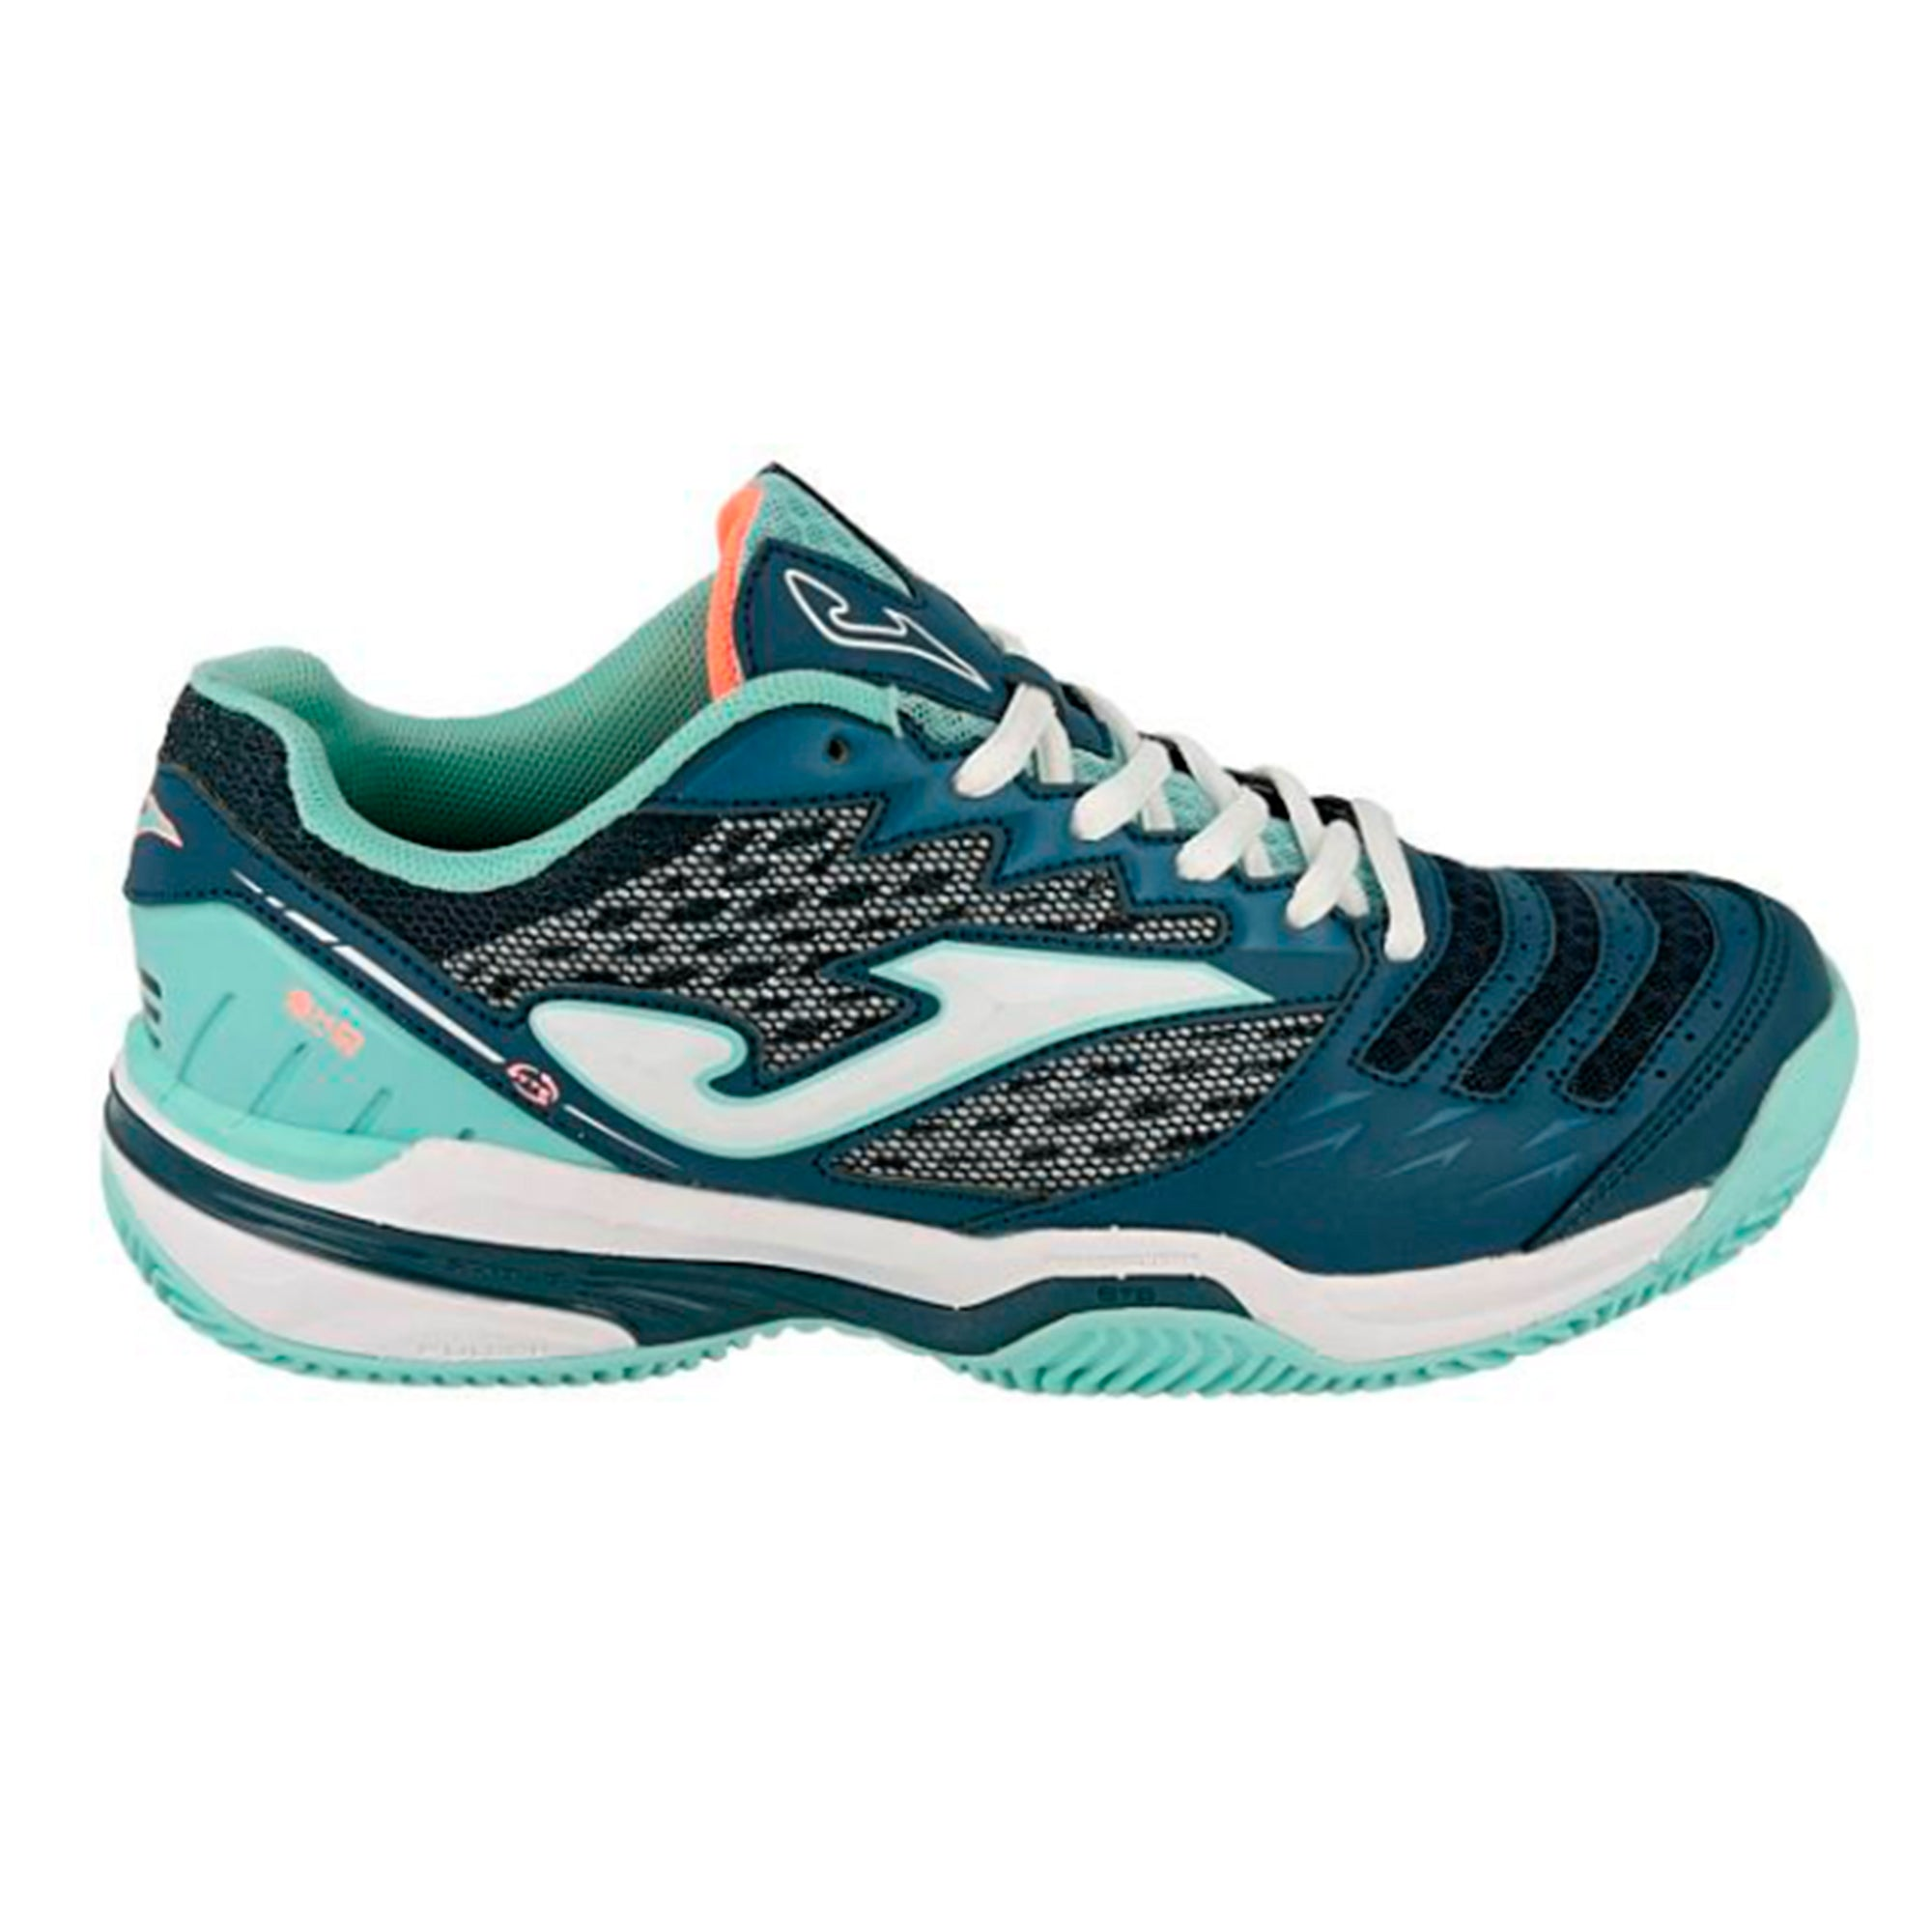 Scarpa T.Ace Lady 703 Navy All Curt